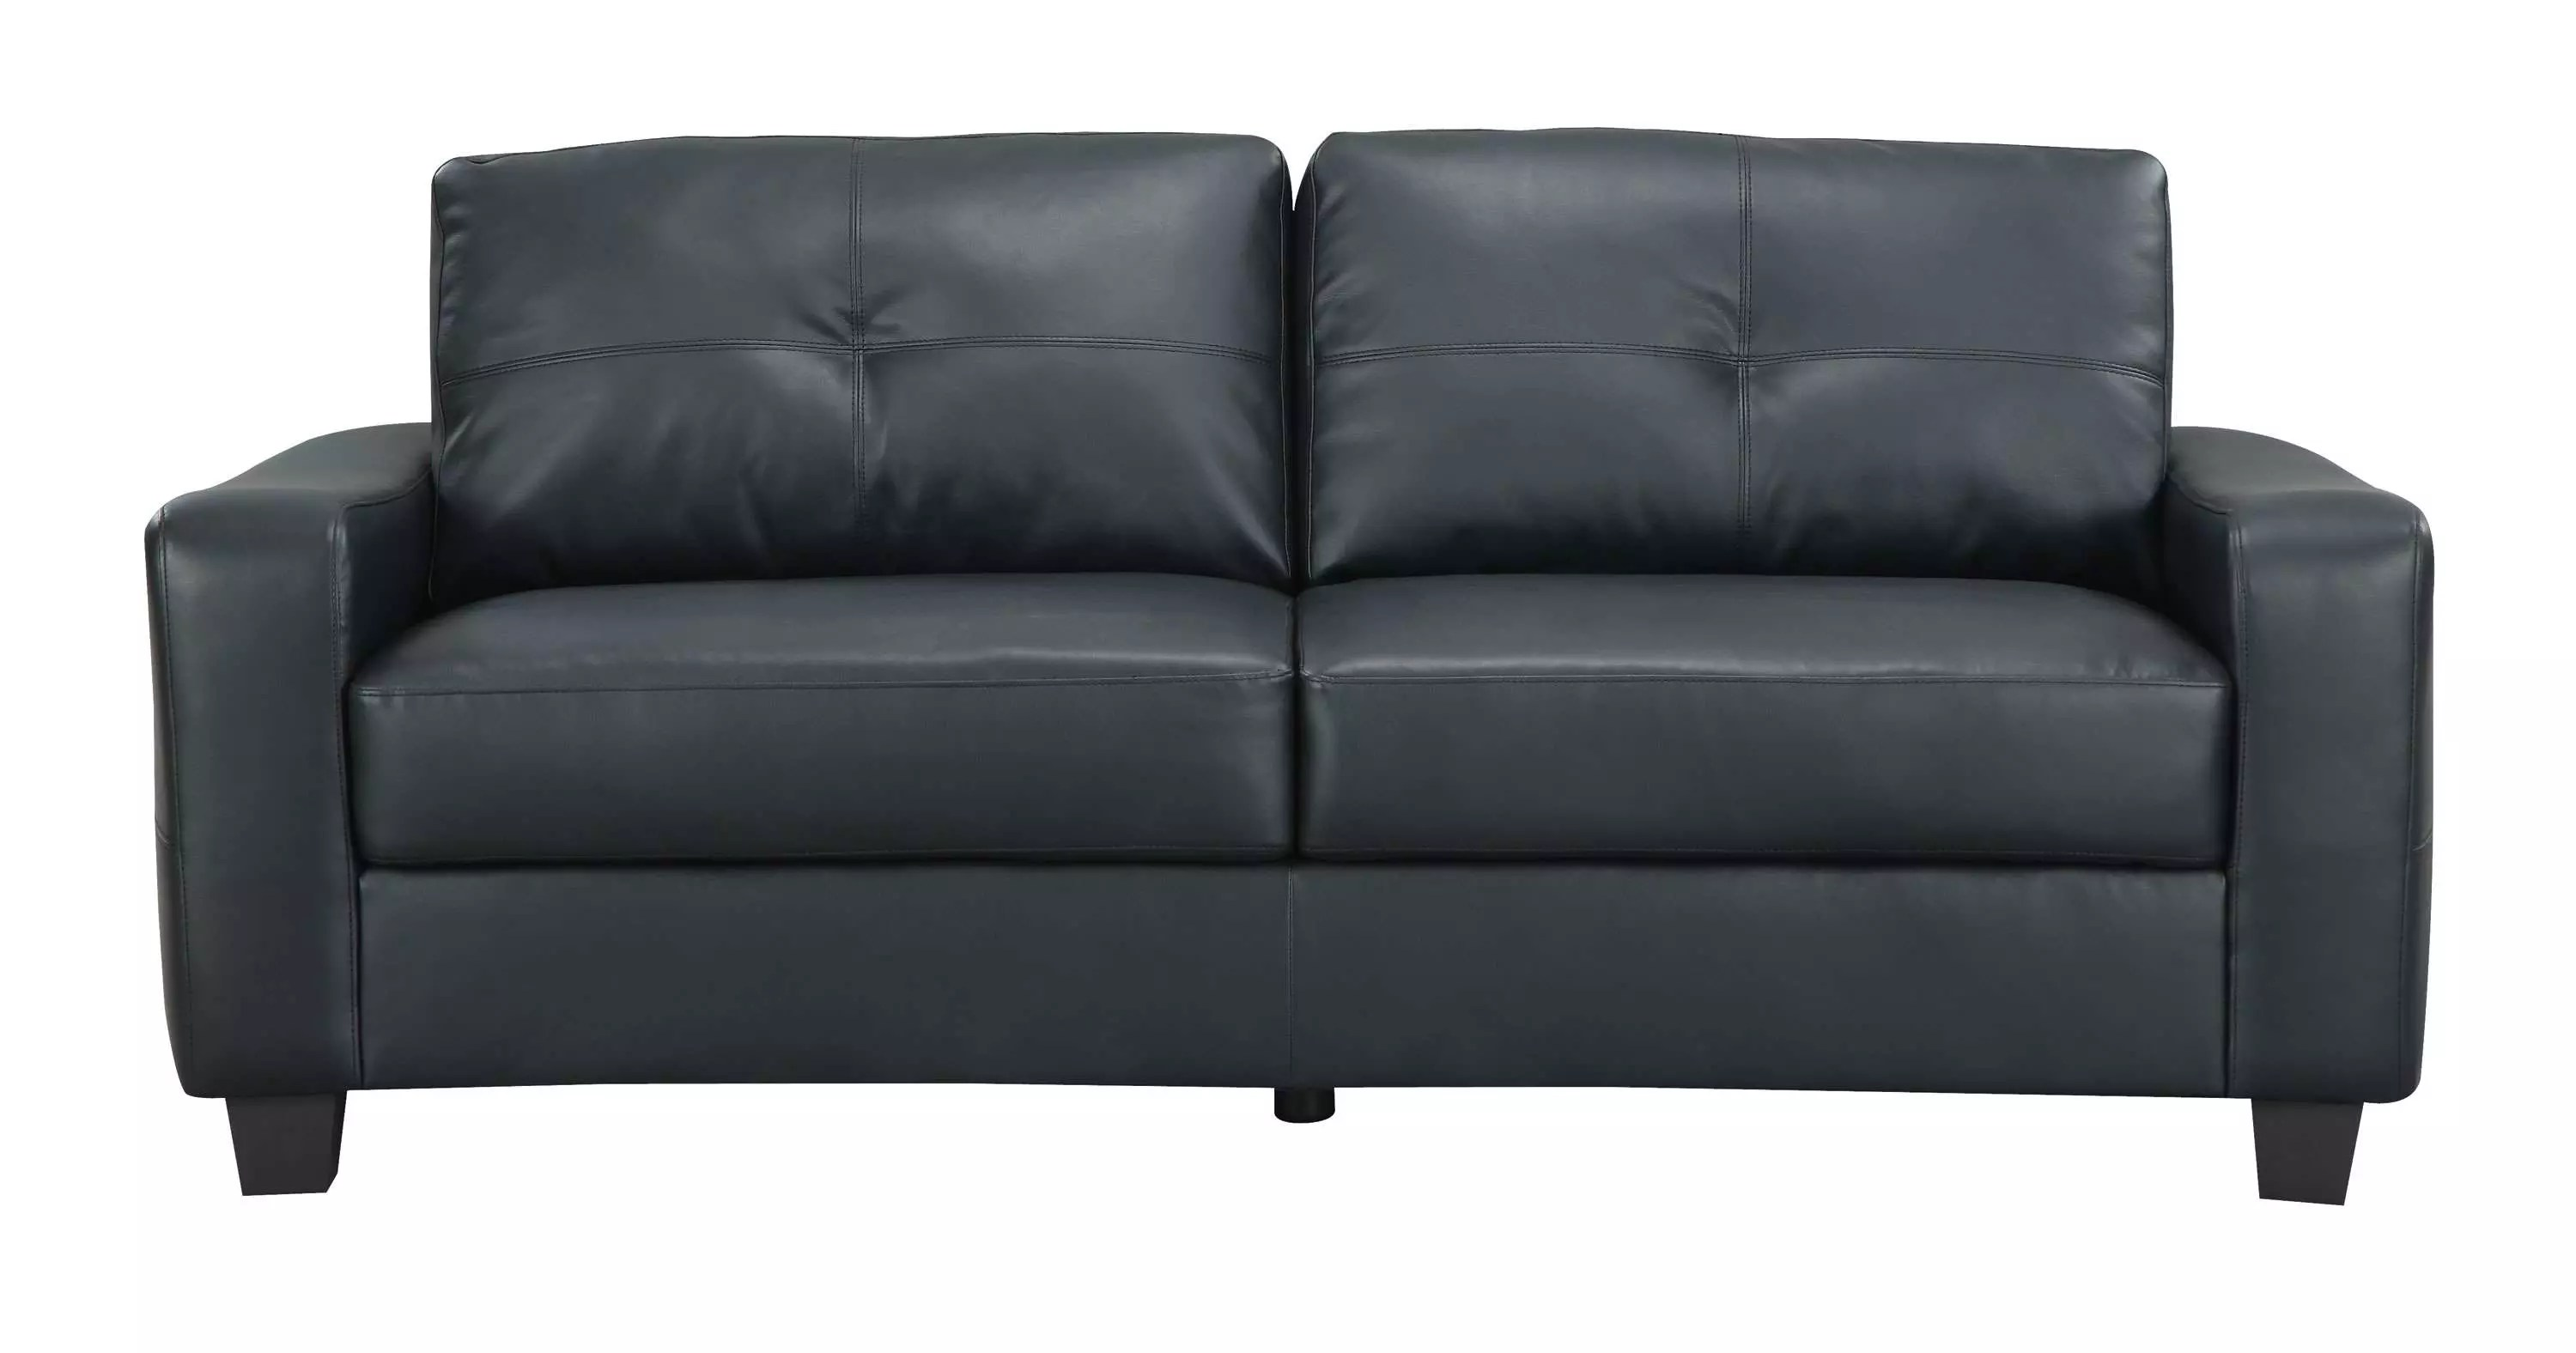 coaster leather sofa reviews andre arbus jasmine black and goedekers